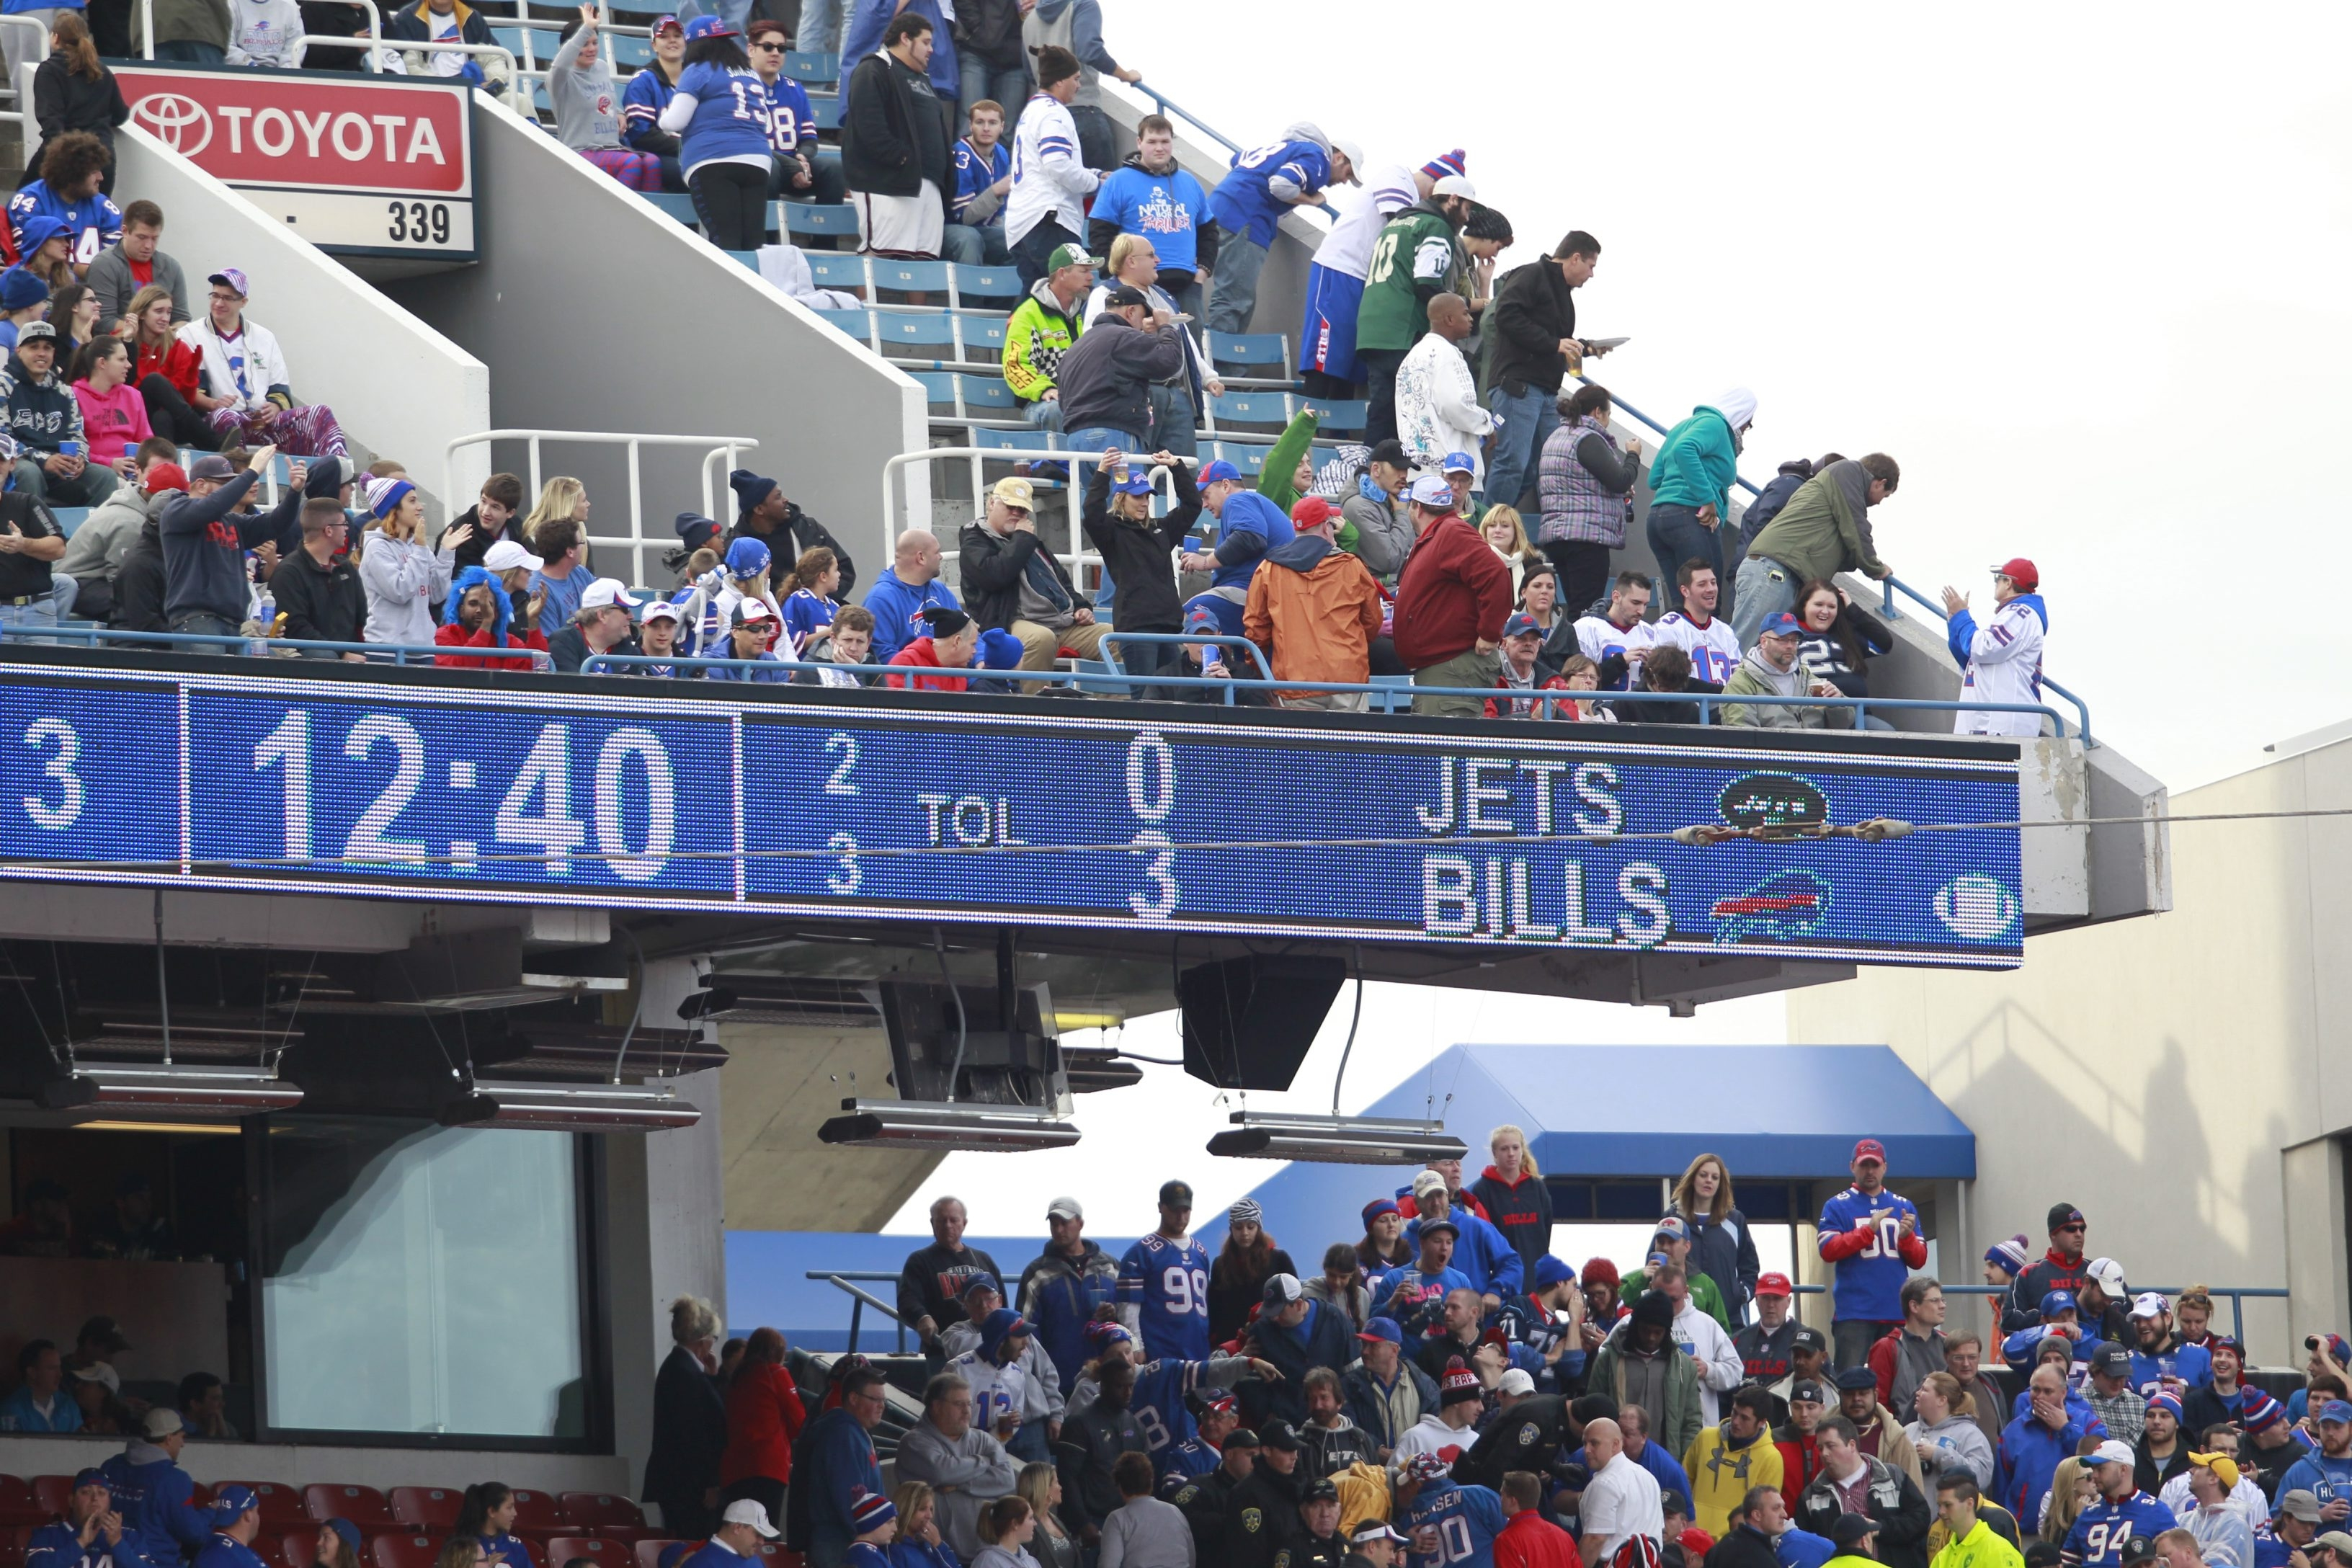 Fourth time this season: Fans watch after Robert Hopkins fell from the upper deck at Ralph Wilson Stadium on Sunday, the fourth such incident at a football game since Aug. 29.